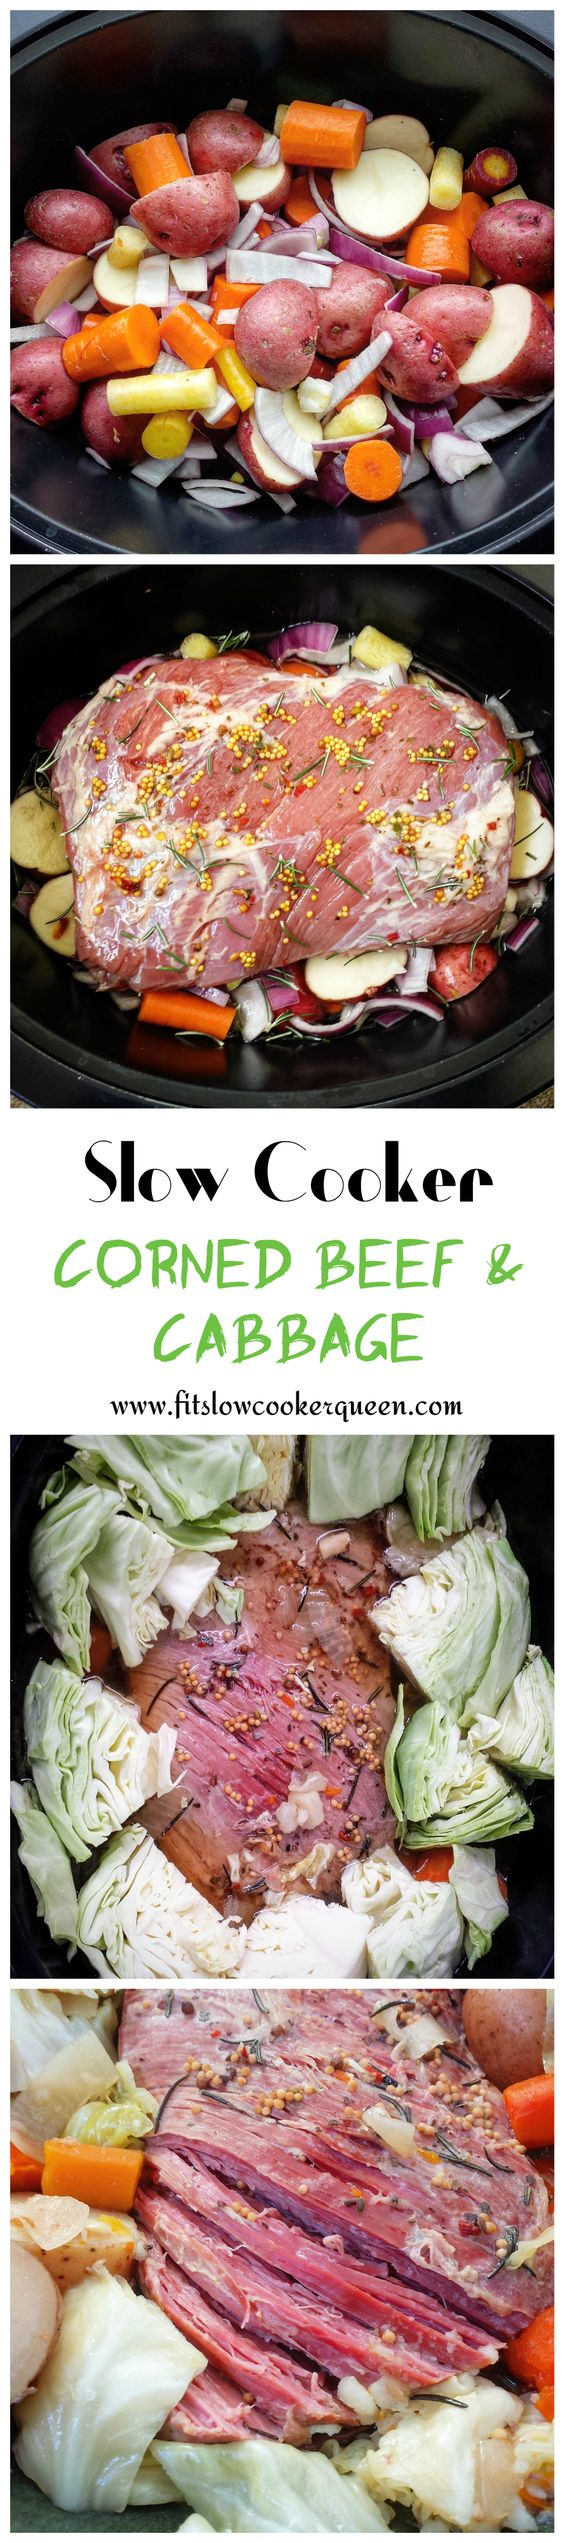 slow cooker corned beef pin